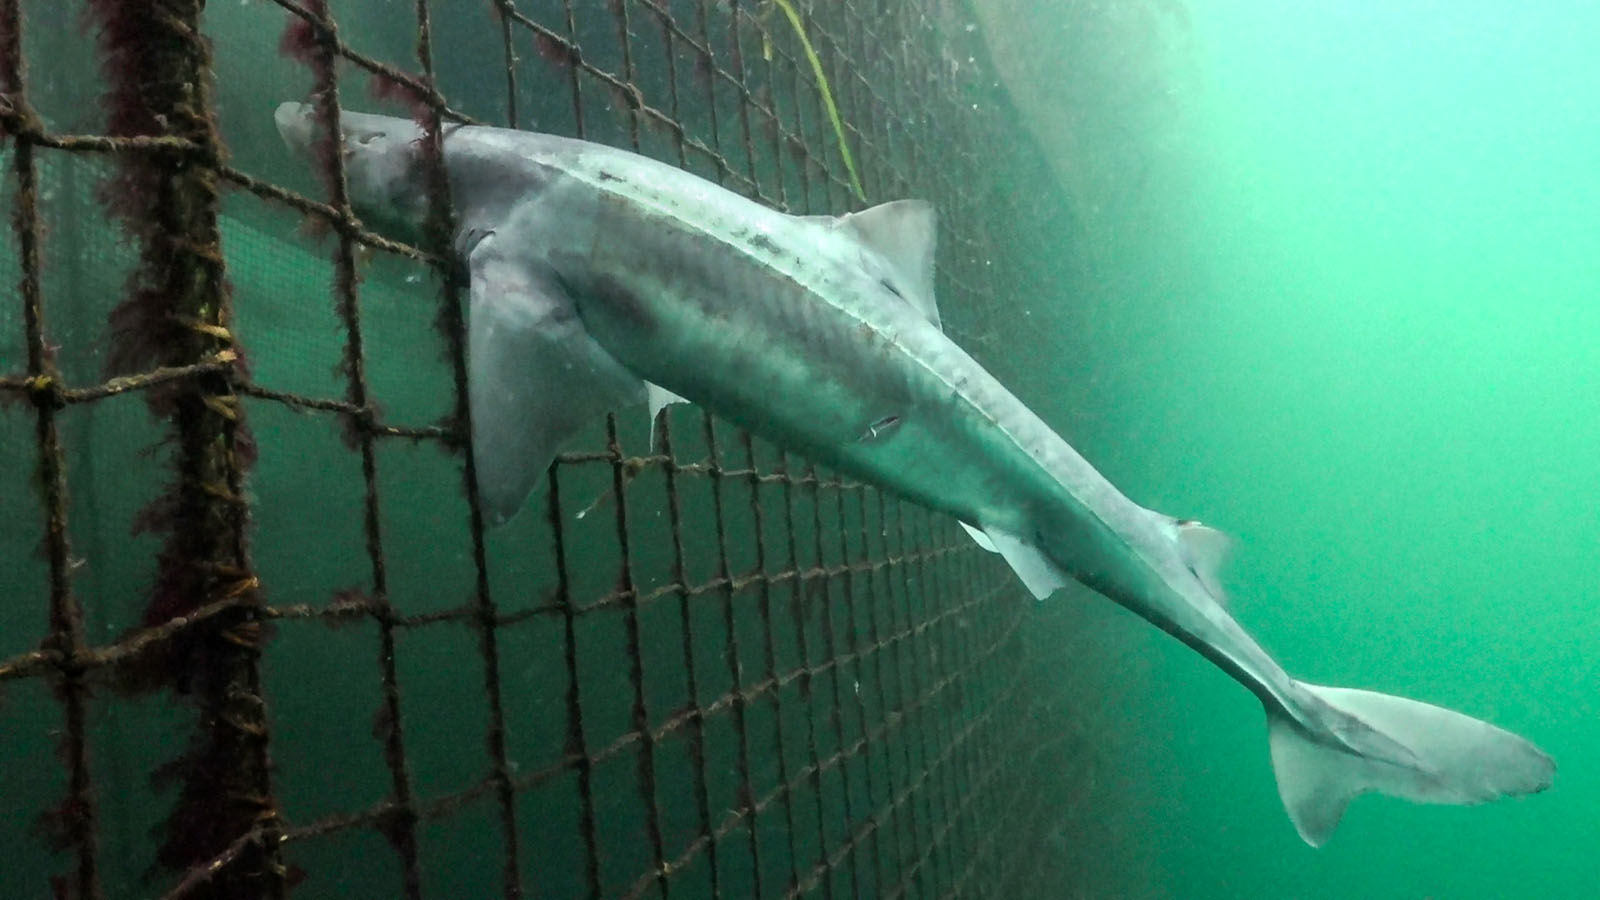 160828-sa-trapped-in-predator-net-dogfish-drowned-trying-to-reach-farmed-atlantic-salmon-835